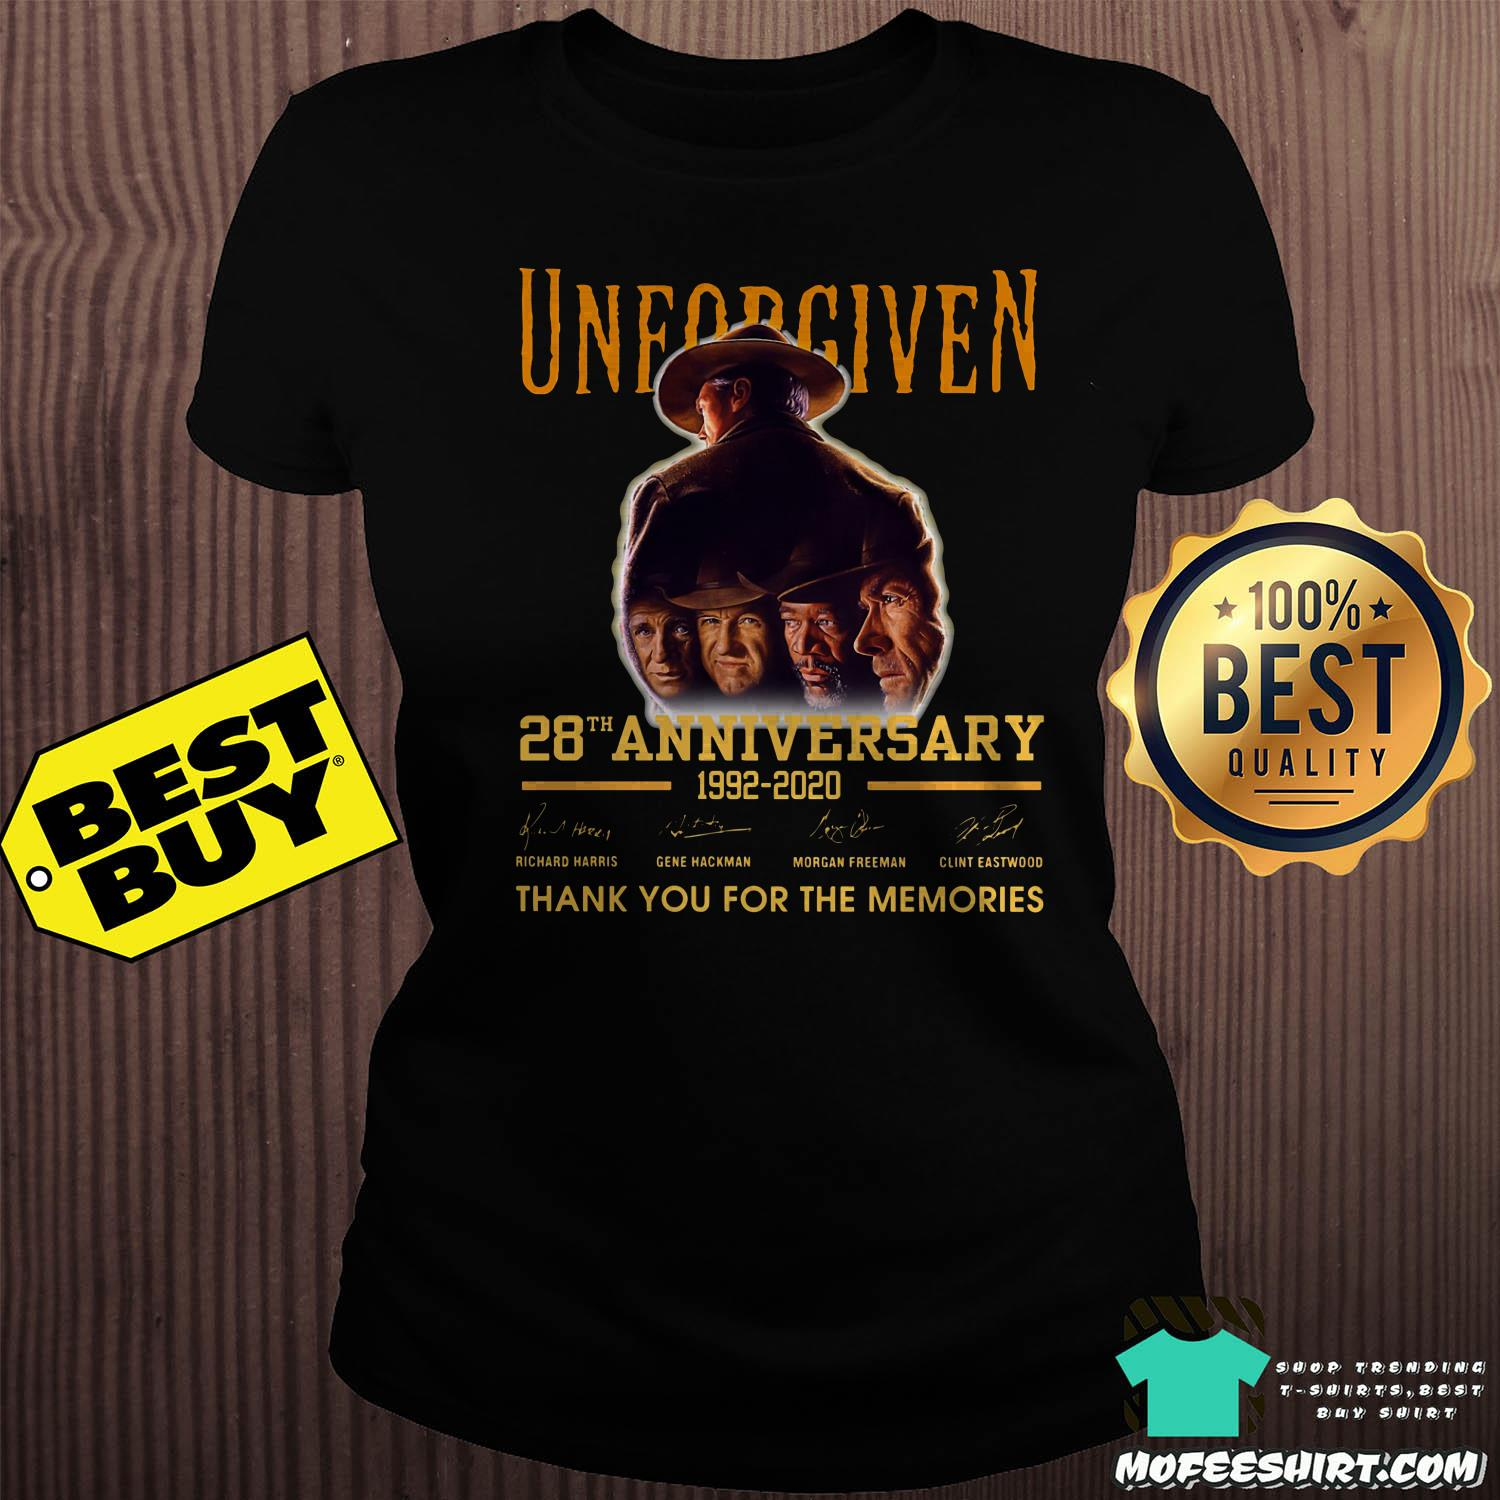 unforgiven 28th anniversary 1992 2020 signature thank you for the memories ladies tee - Unforgiven 28th Anniversary 1992-2020 Signature Thank You For The Memories Shirt